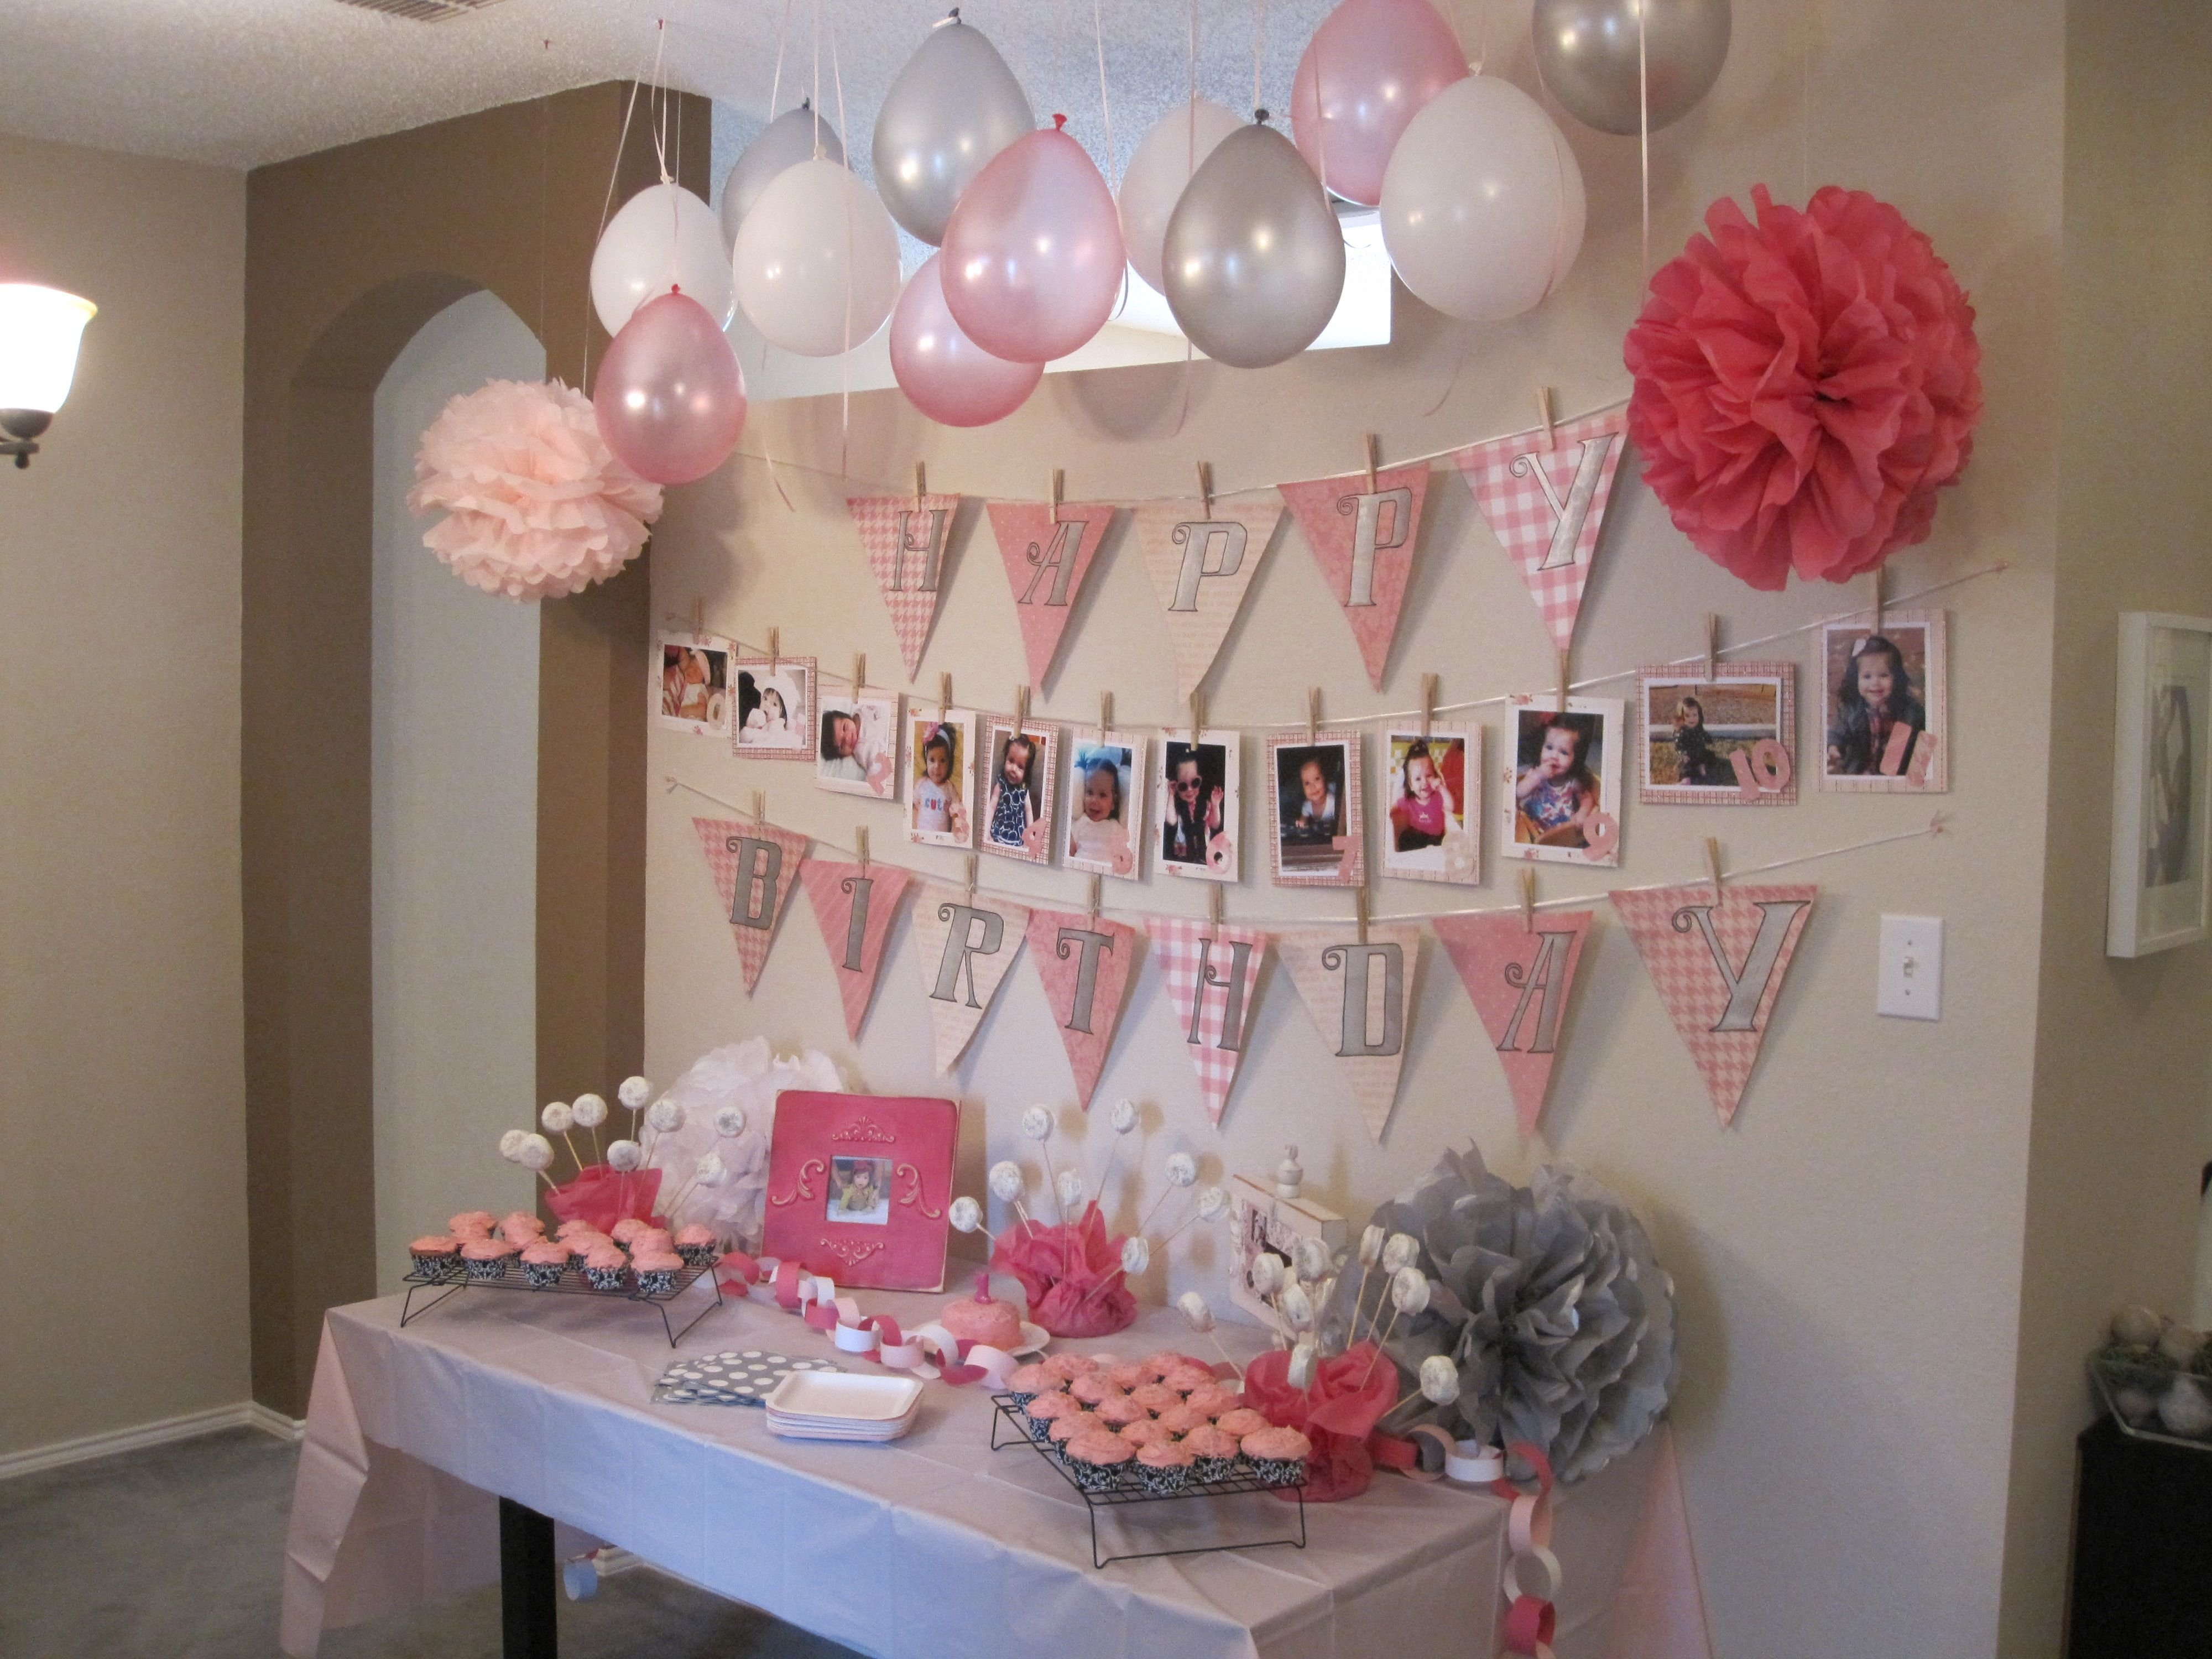 10 Lovely Baby Girl Birthday Party Ideas actual decorations my friend did for her lil girls bday party i 2020